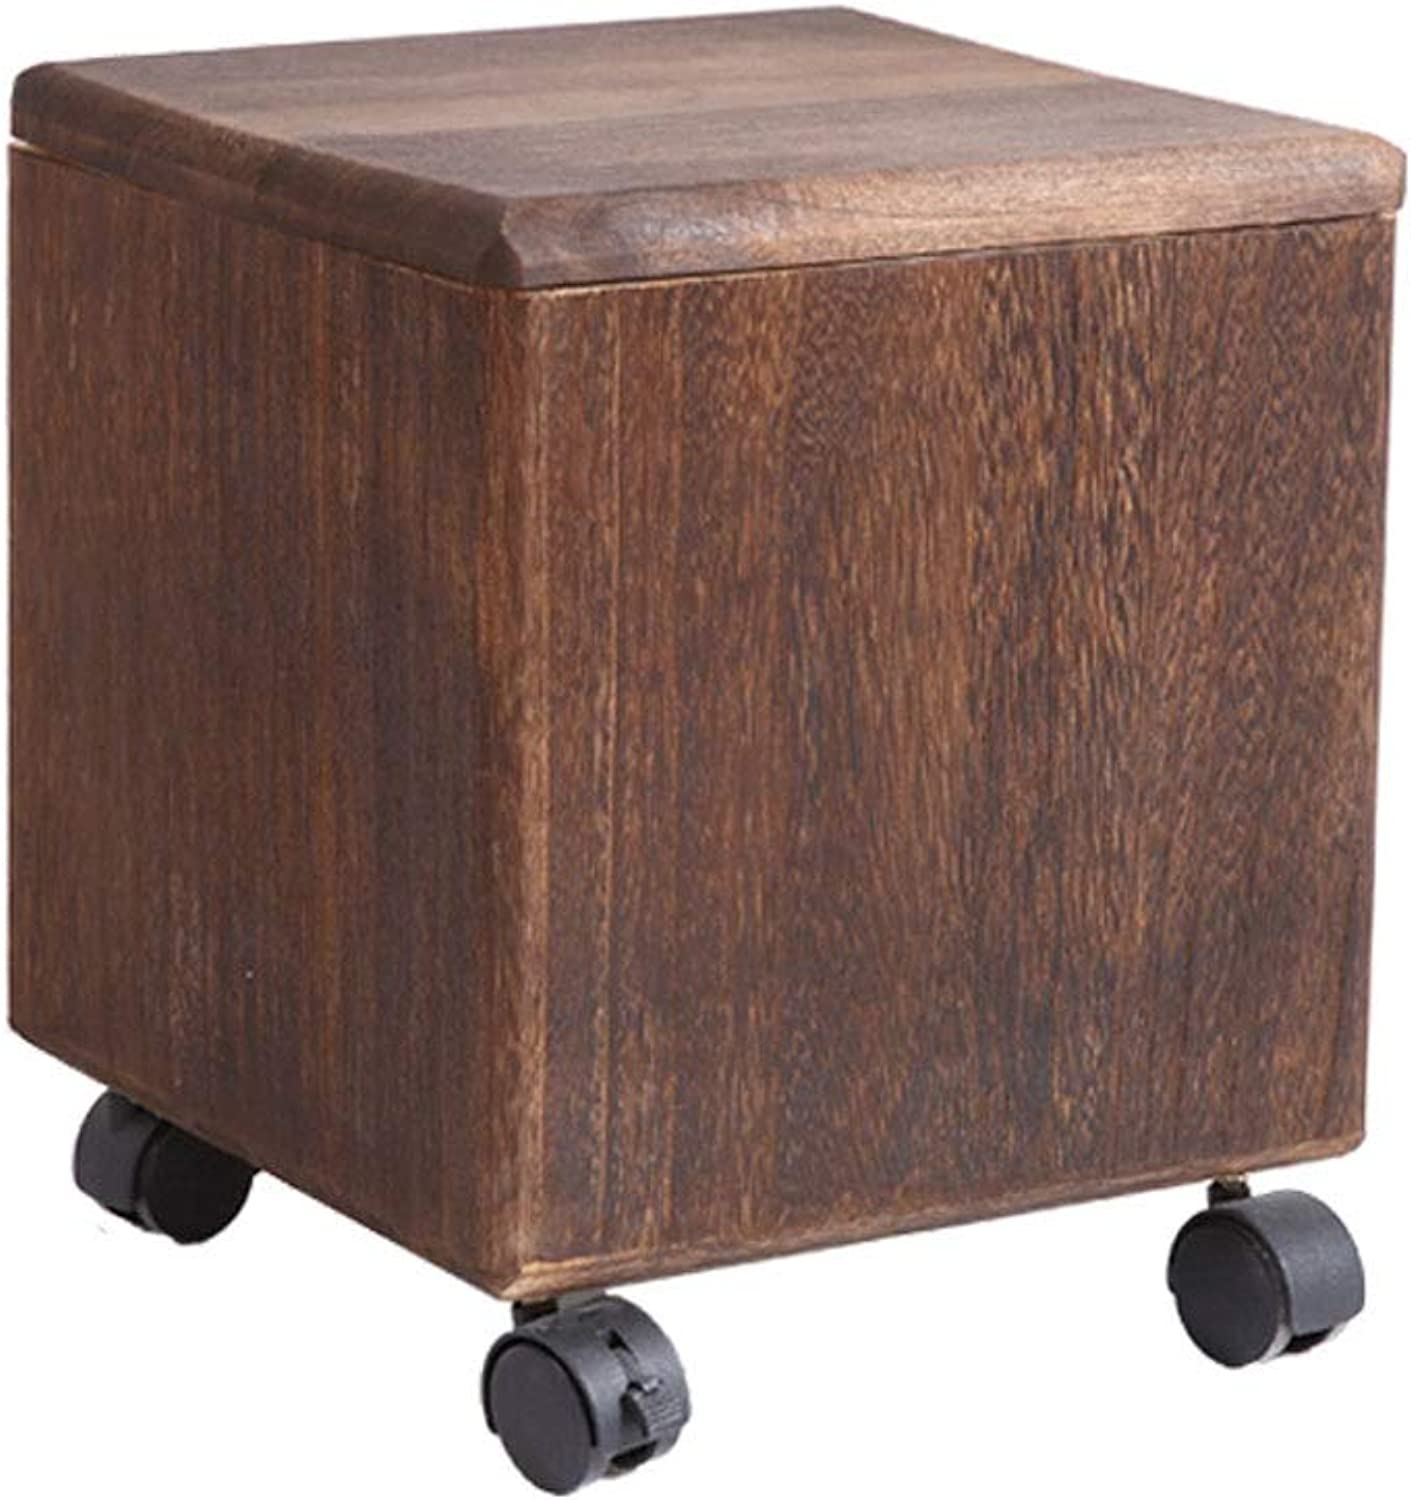 Creative Storage Stool Can Sit Adult Solid Wood Toys Debris Storage Storage Box Creative shoes Bench Multifunctional Storage Stool (color   B, Size   M)